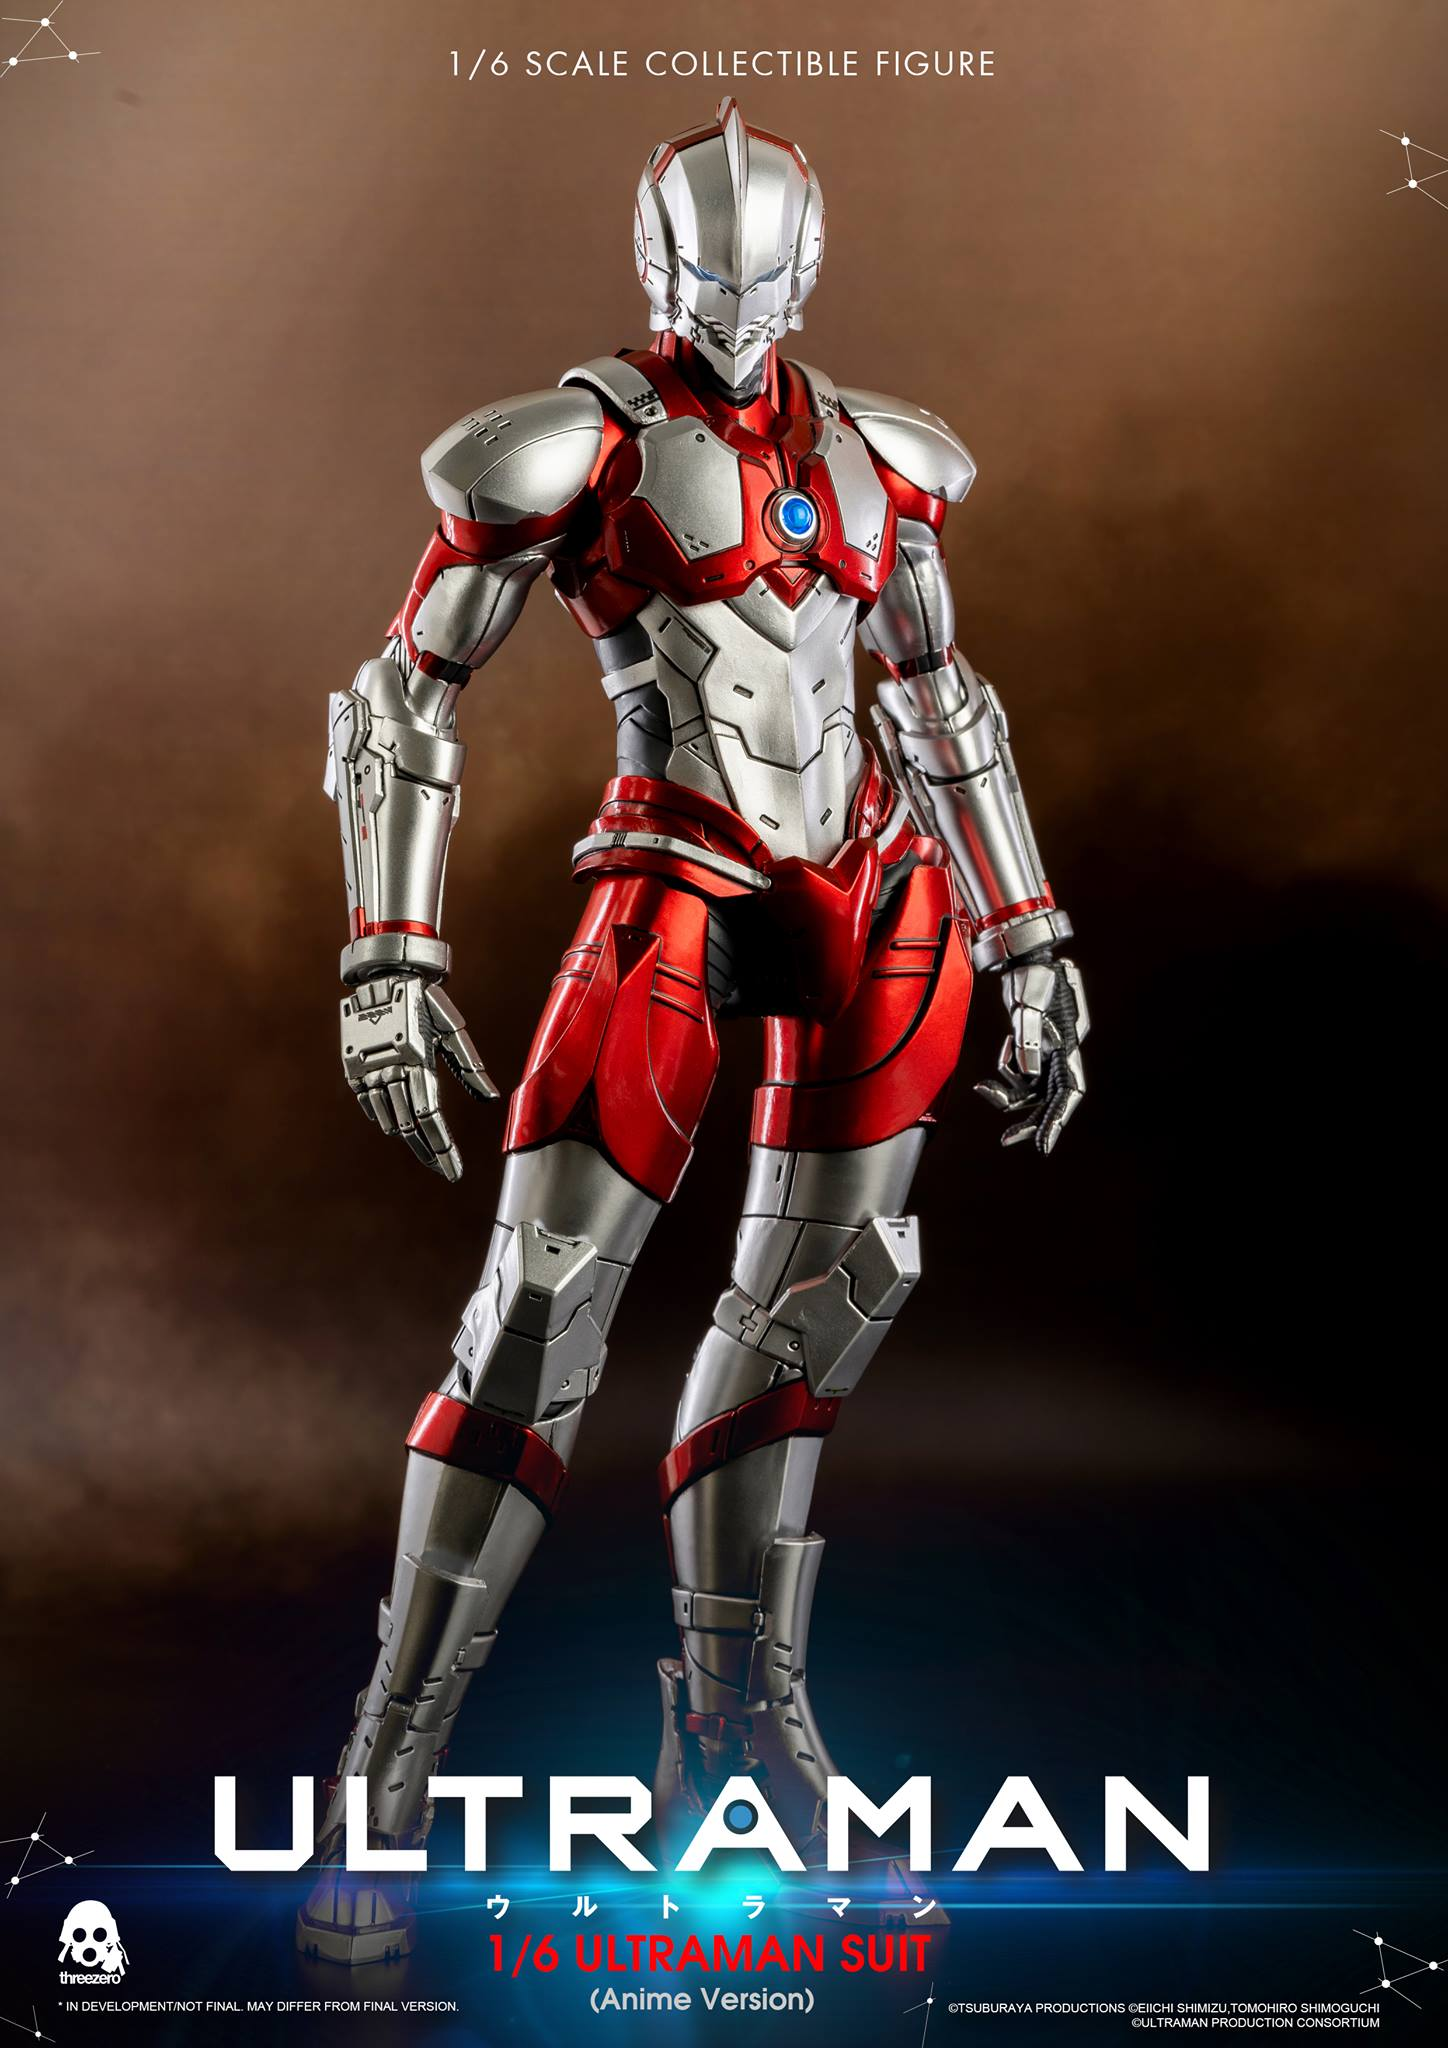 [Pre-Order] Ultraman 1/6 Scale Figure Anime Edition